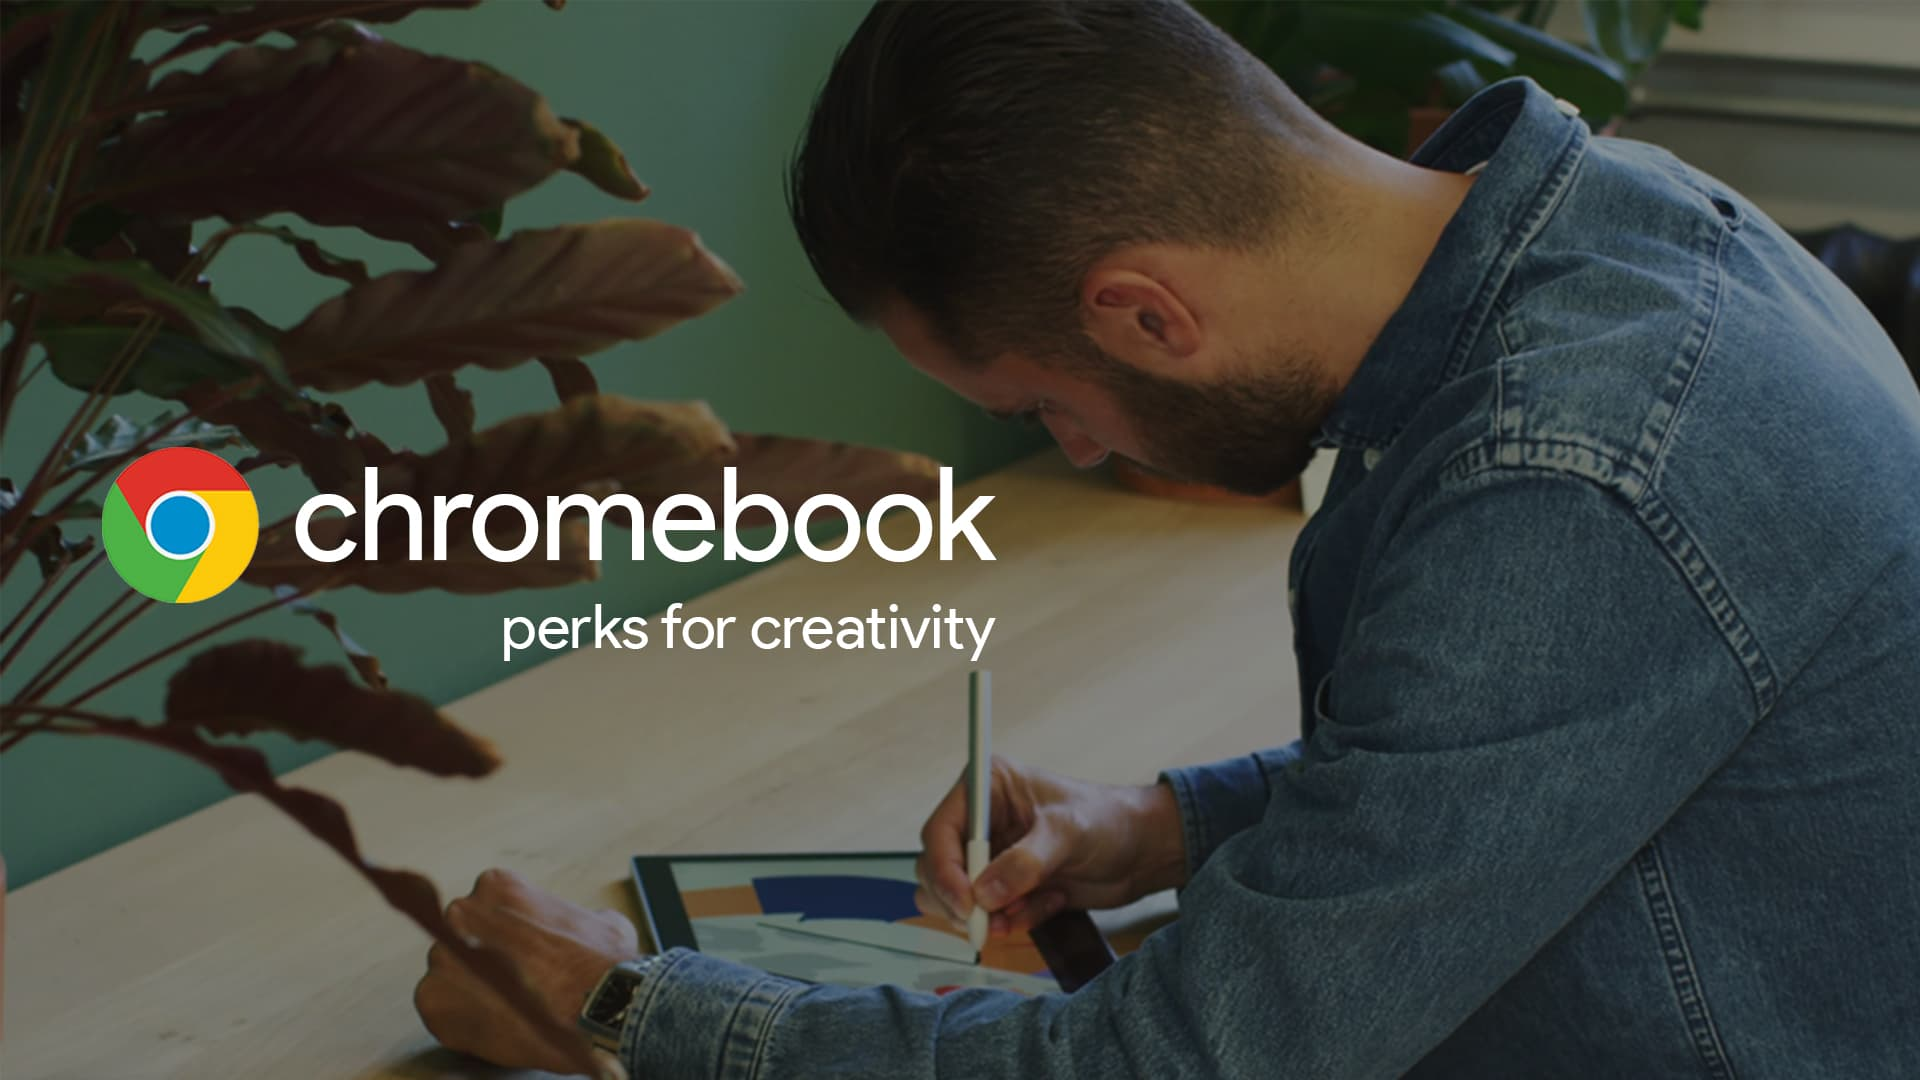 These new Chromebook perks should help you explore your creative side